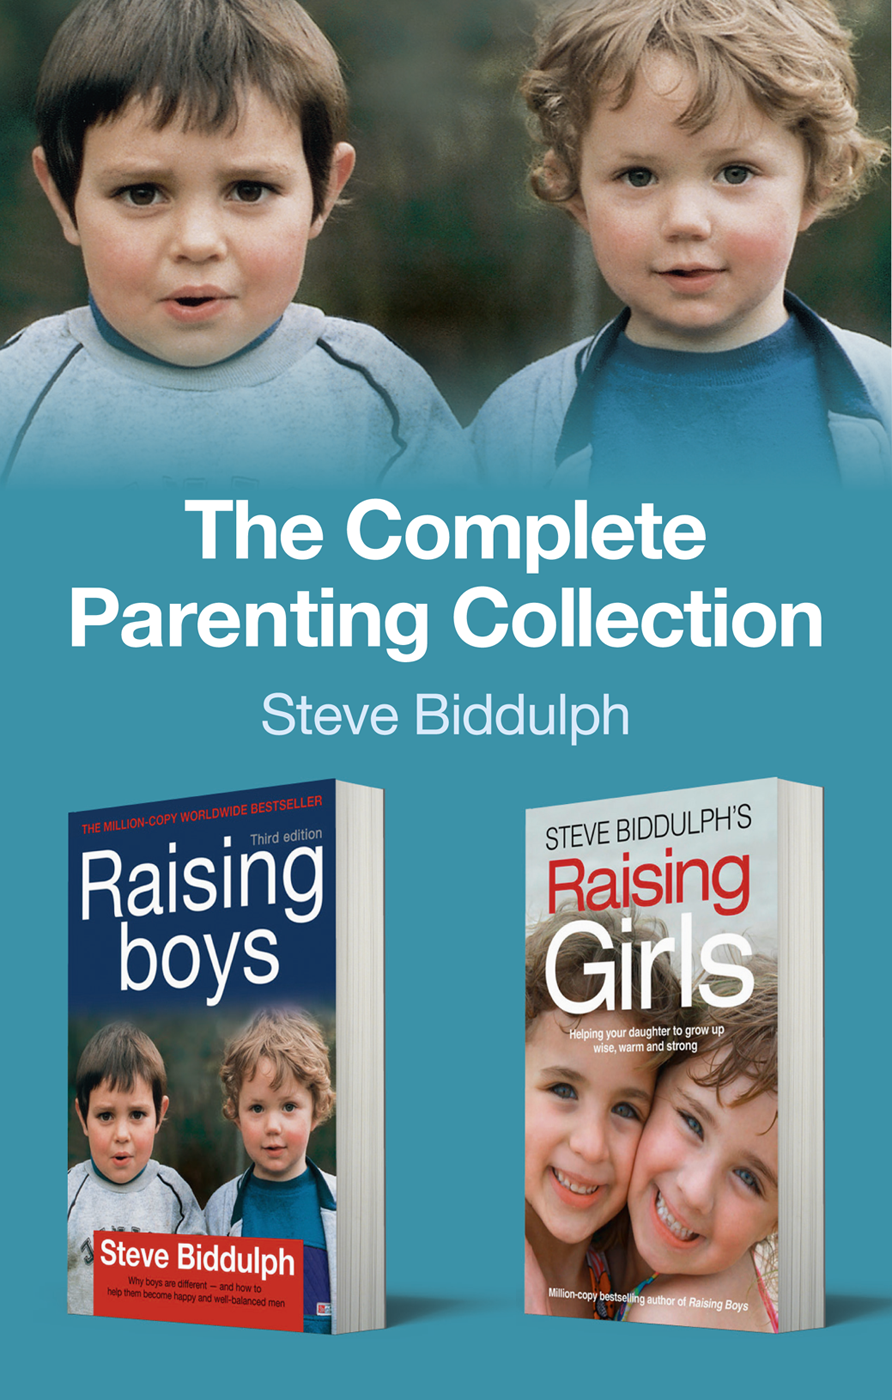 Steve Biddulph The Complete Parenting Collection the brambly hedge complete collection